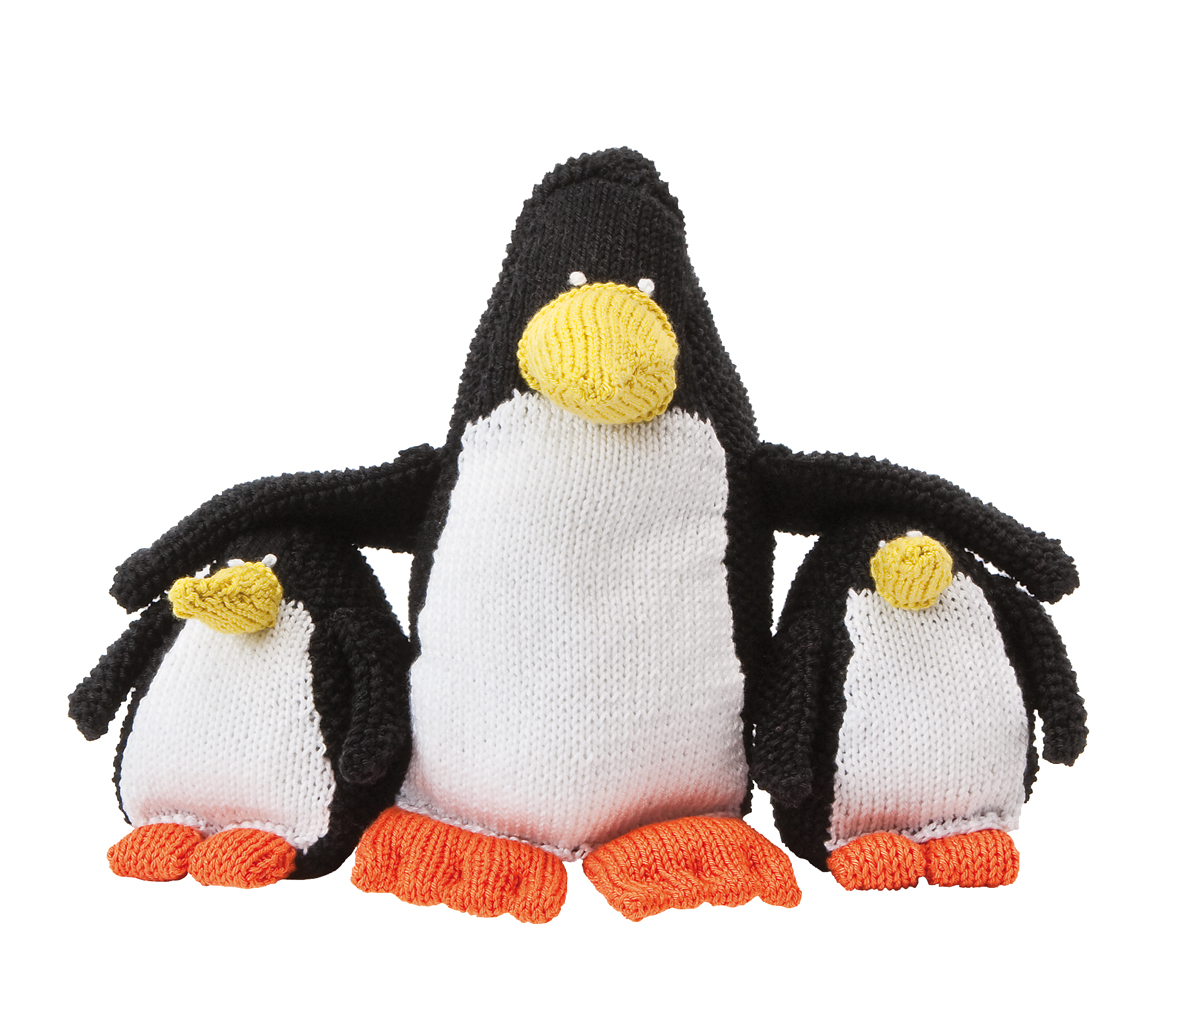 12 Days of Penguin... On the twelfth day of Penguin